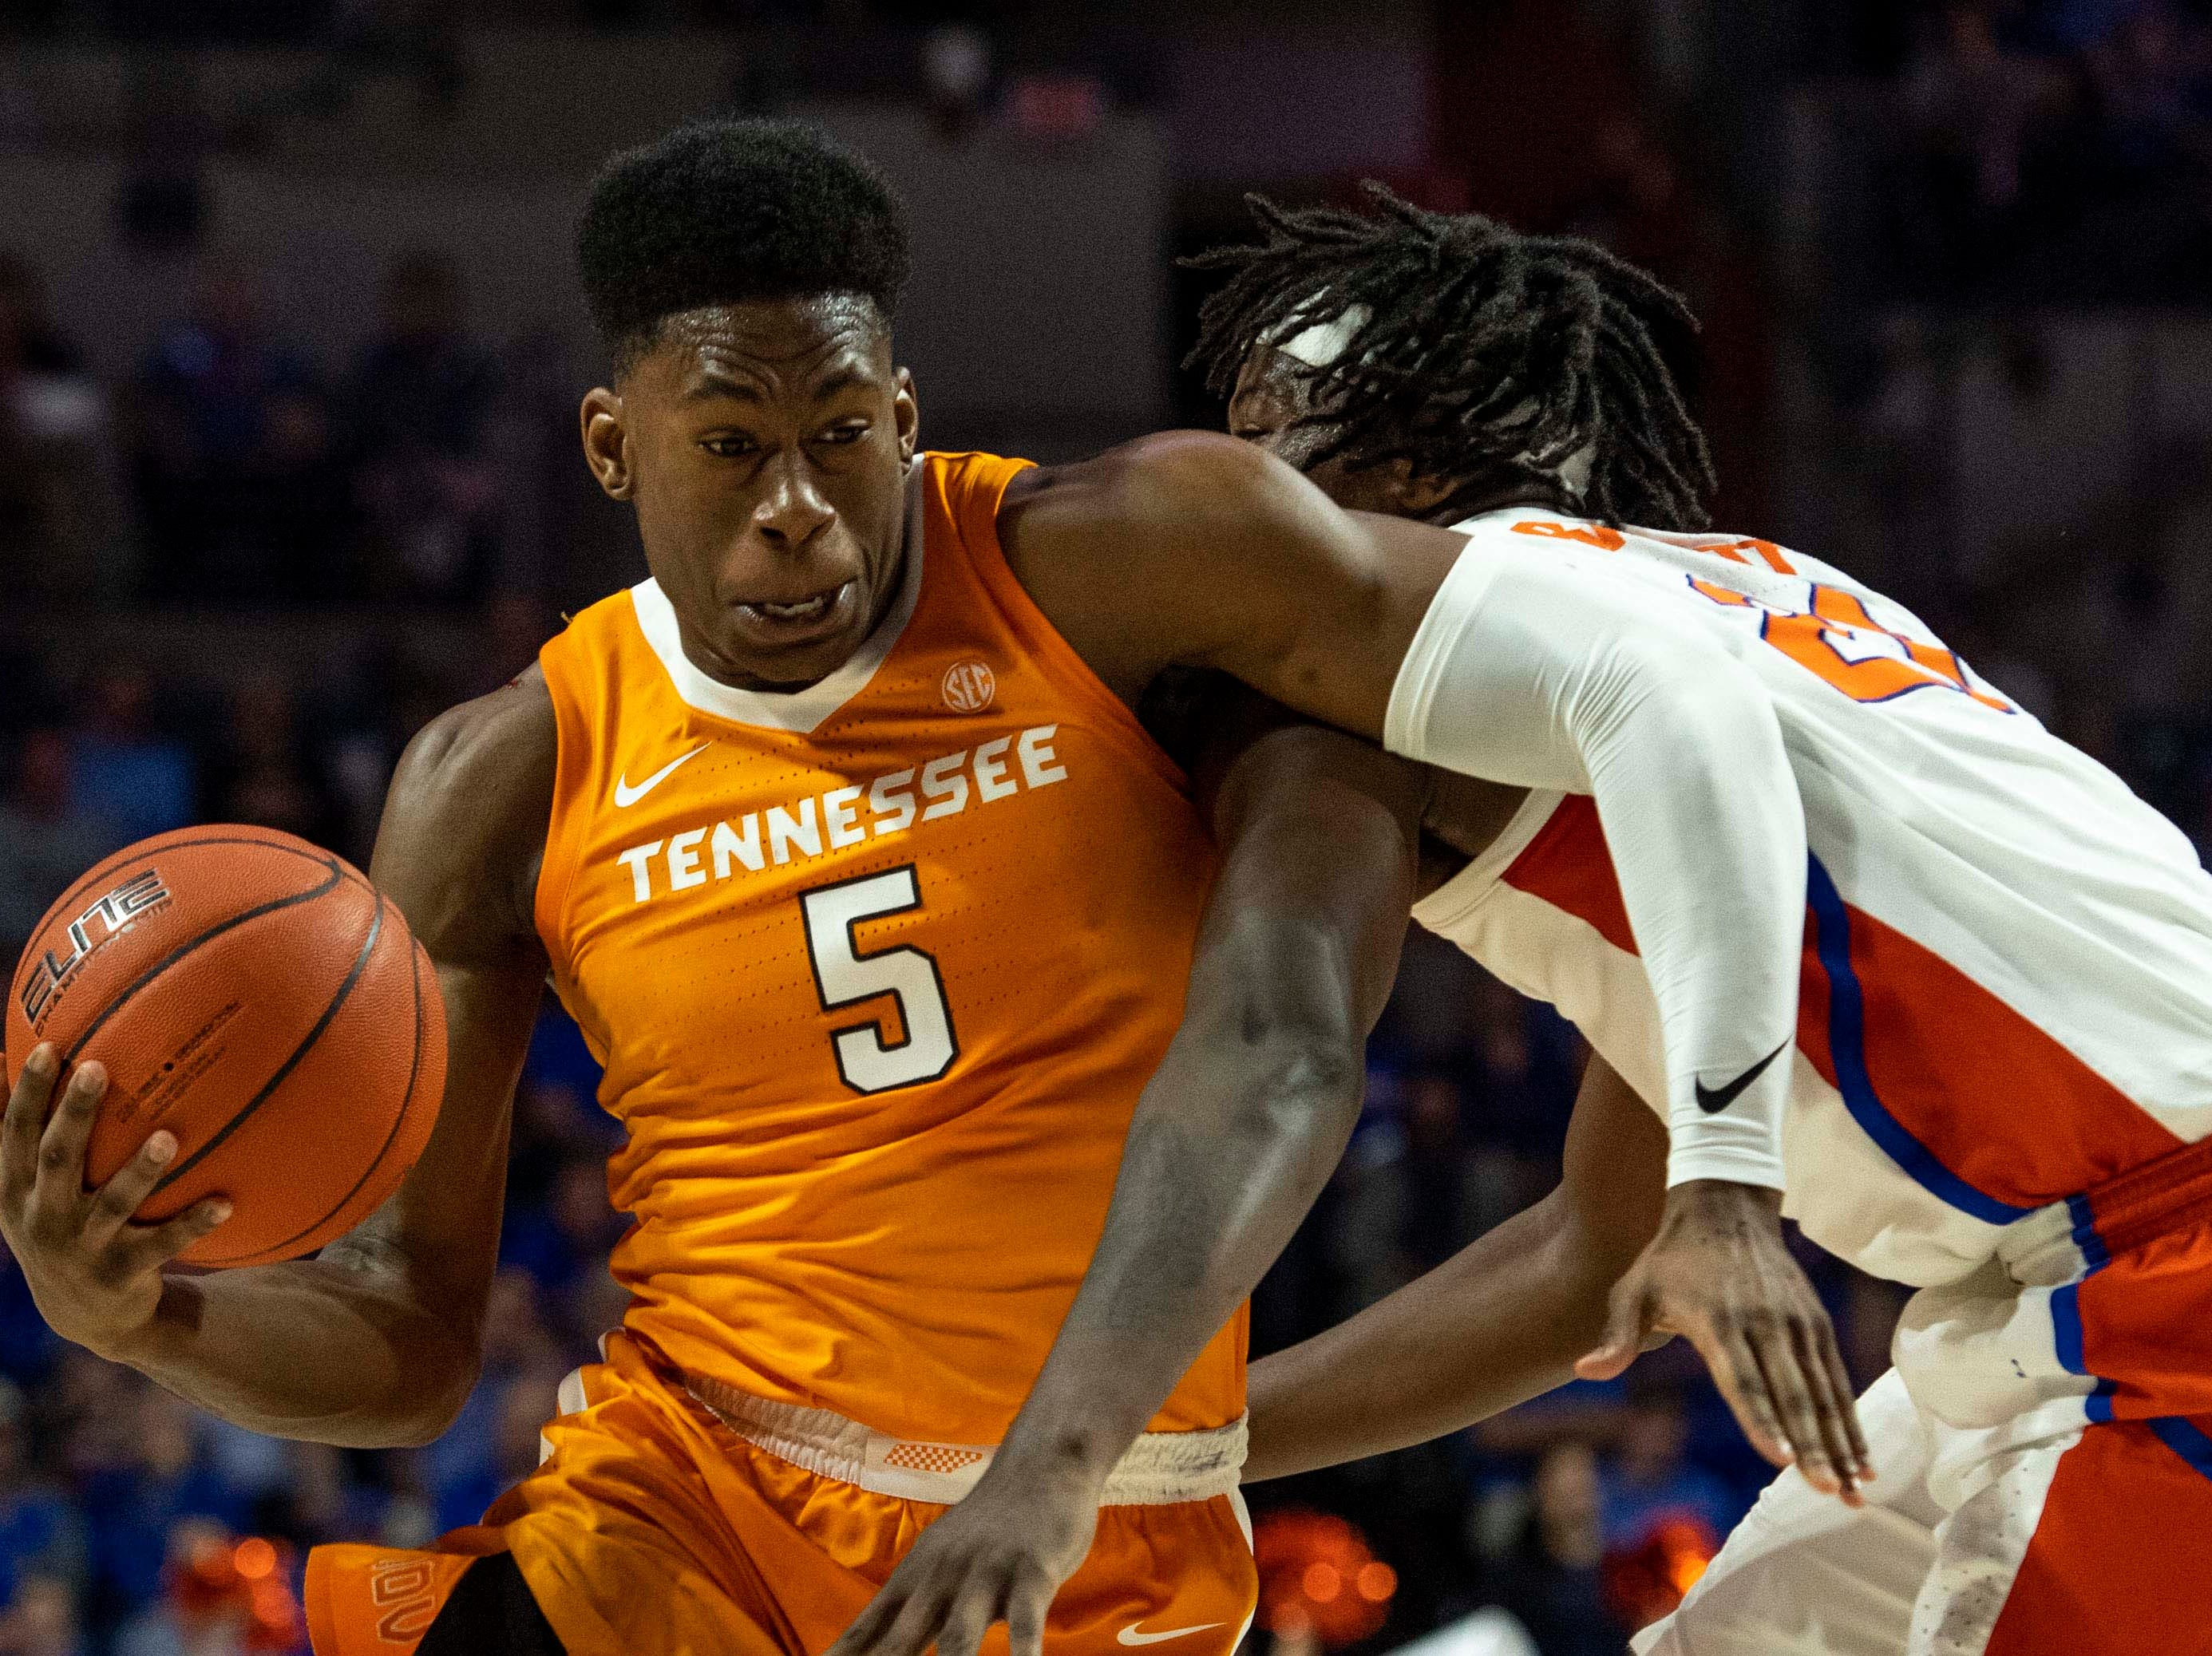 Tennessee Volunteers guard Admiral Schofield (5) drives for the basket as Florida Gators forward Dontay Bassett (21) defends on Jan. 12, 2019.